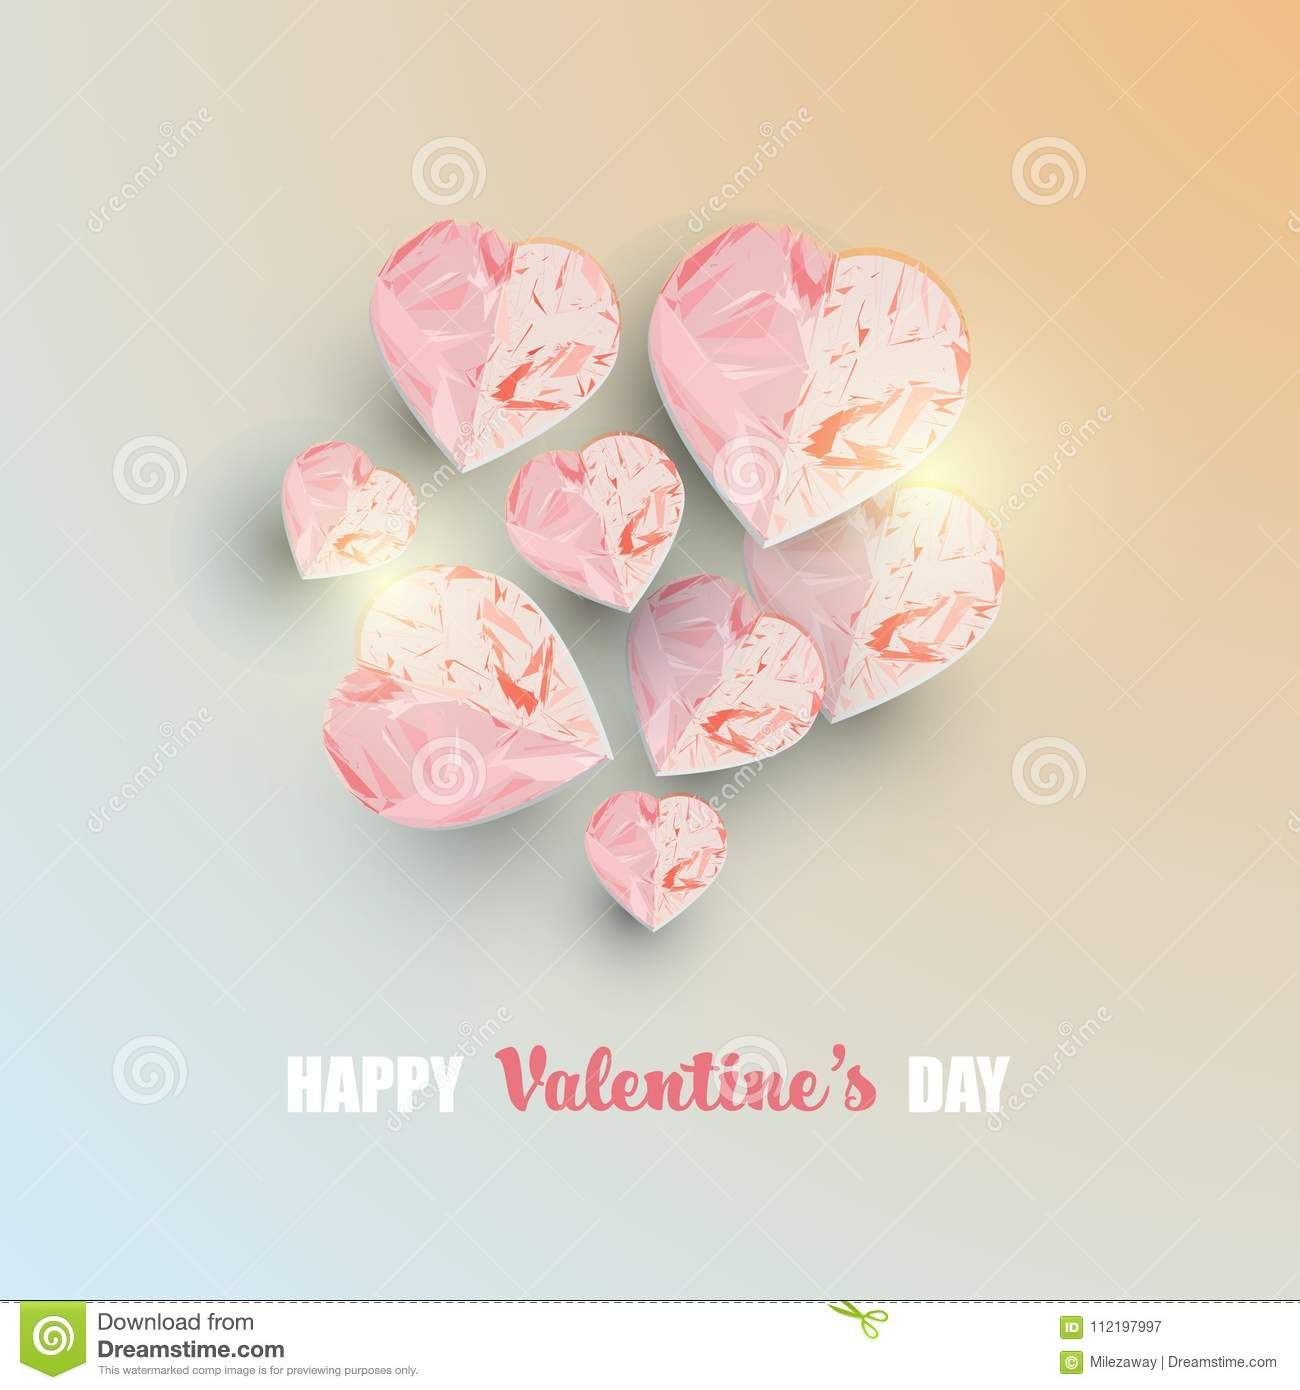 Valentine S Day Abstract Background With 3d Heart Shapes